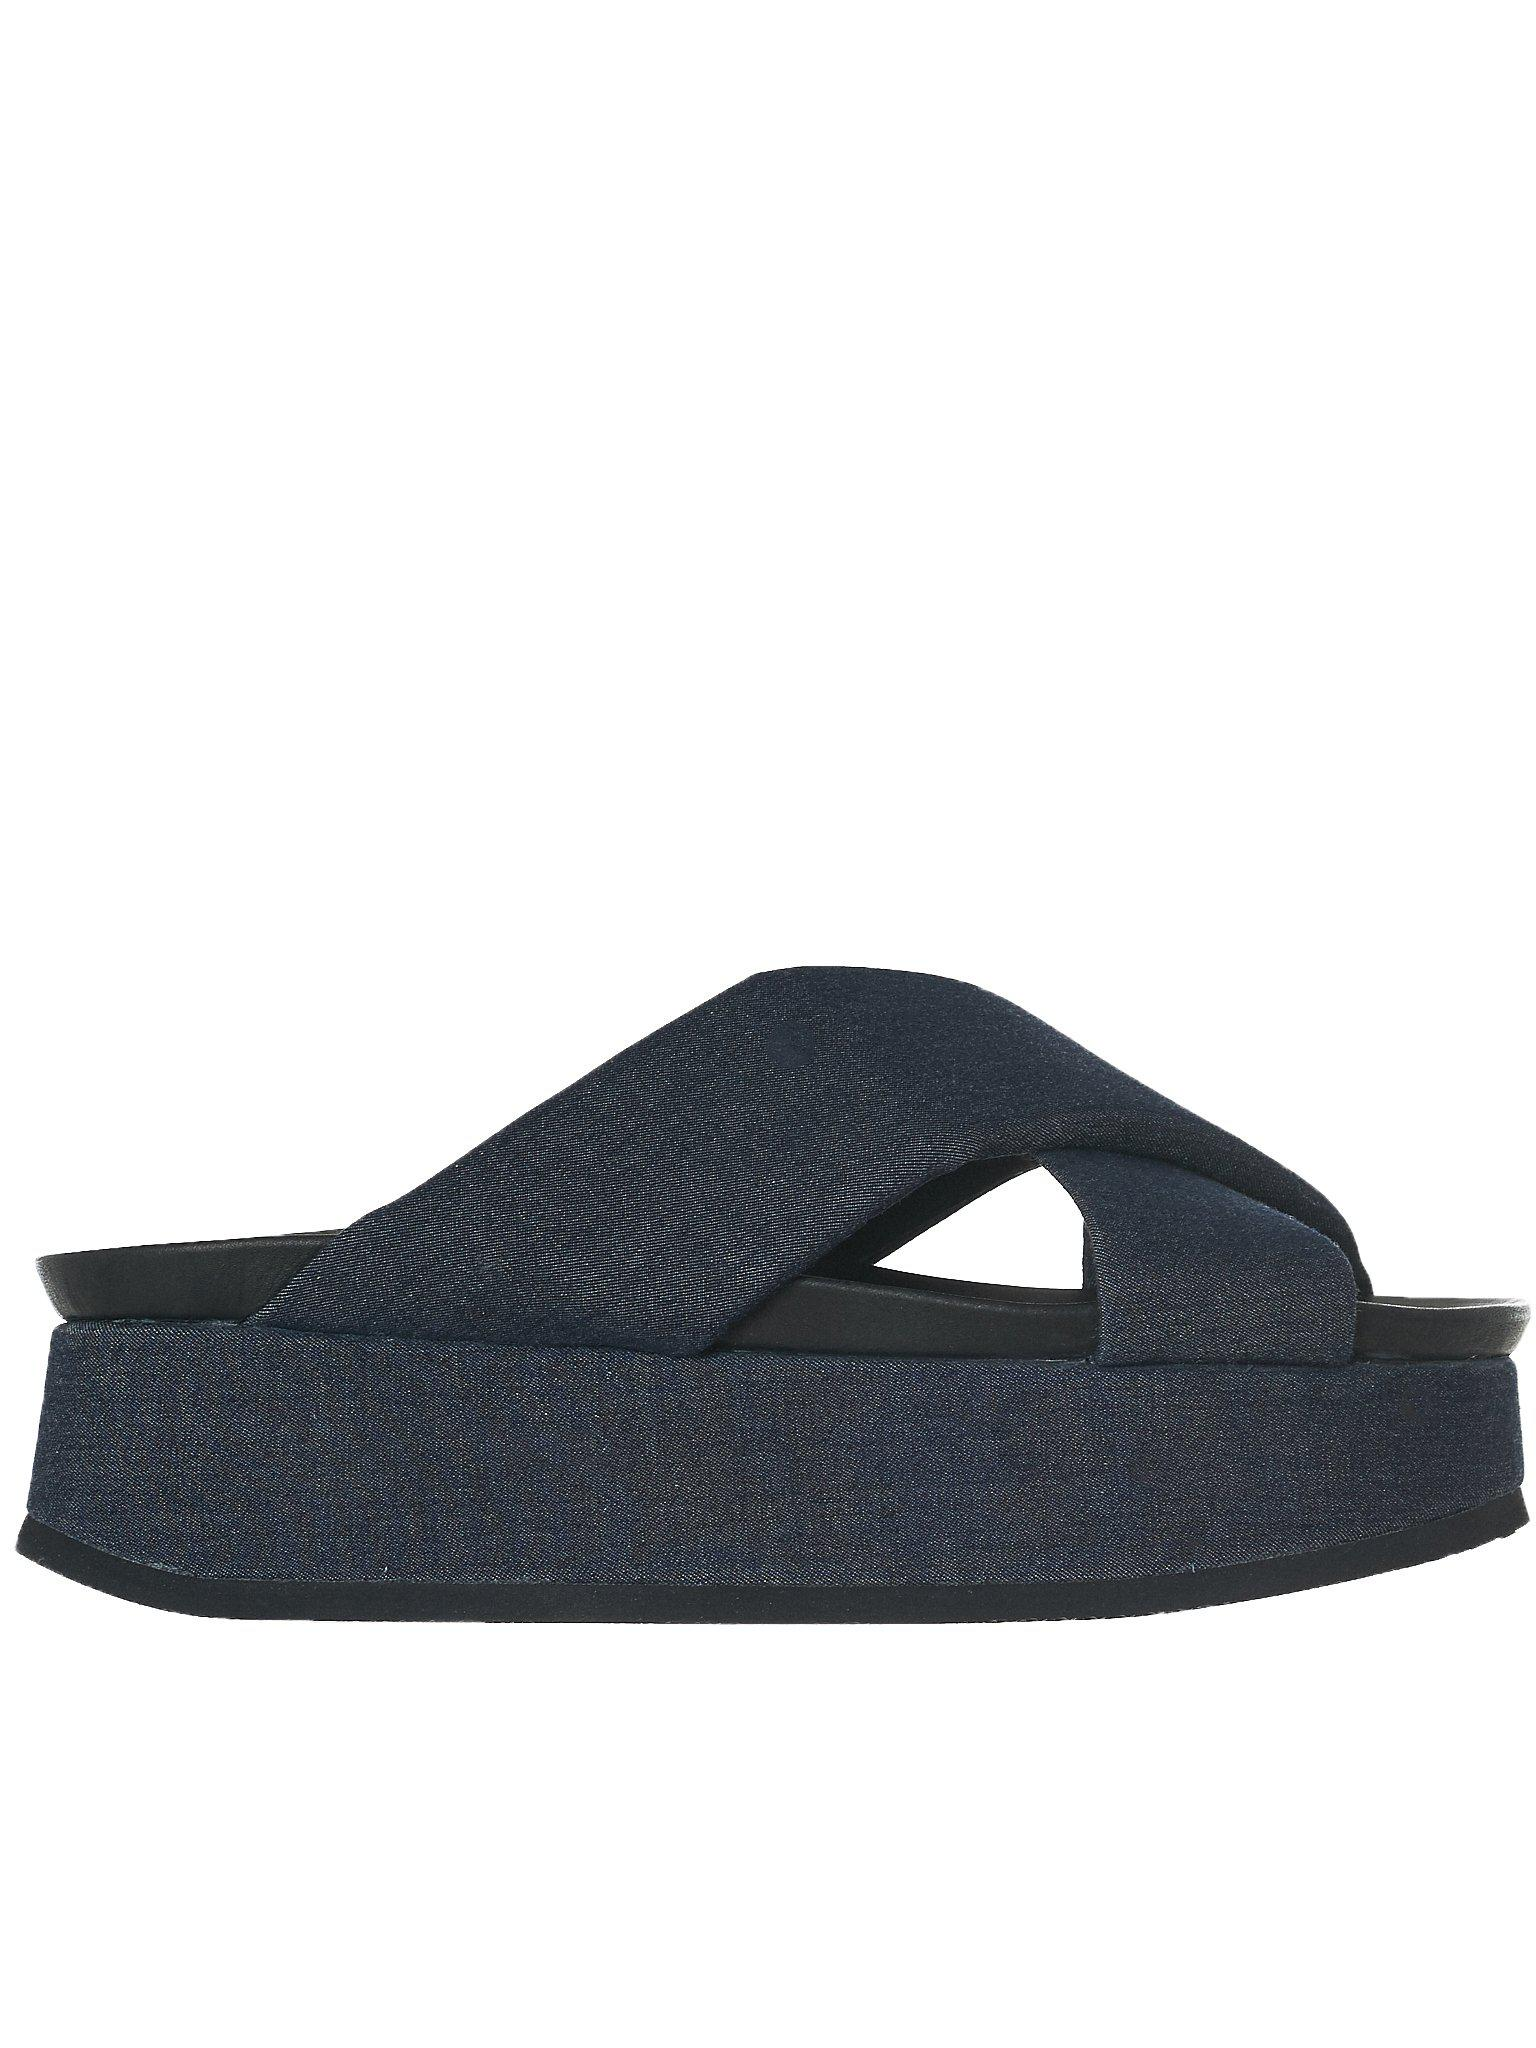 get to buy cheap price great deals cheap online Peter Non Cruz sandals outlet online for sale wholesale price TdJH8scv